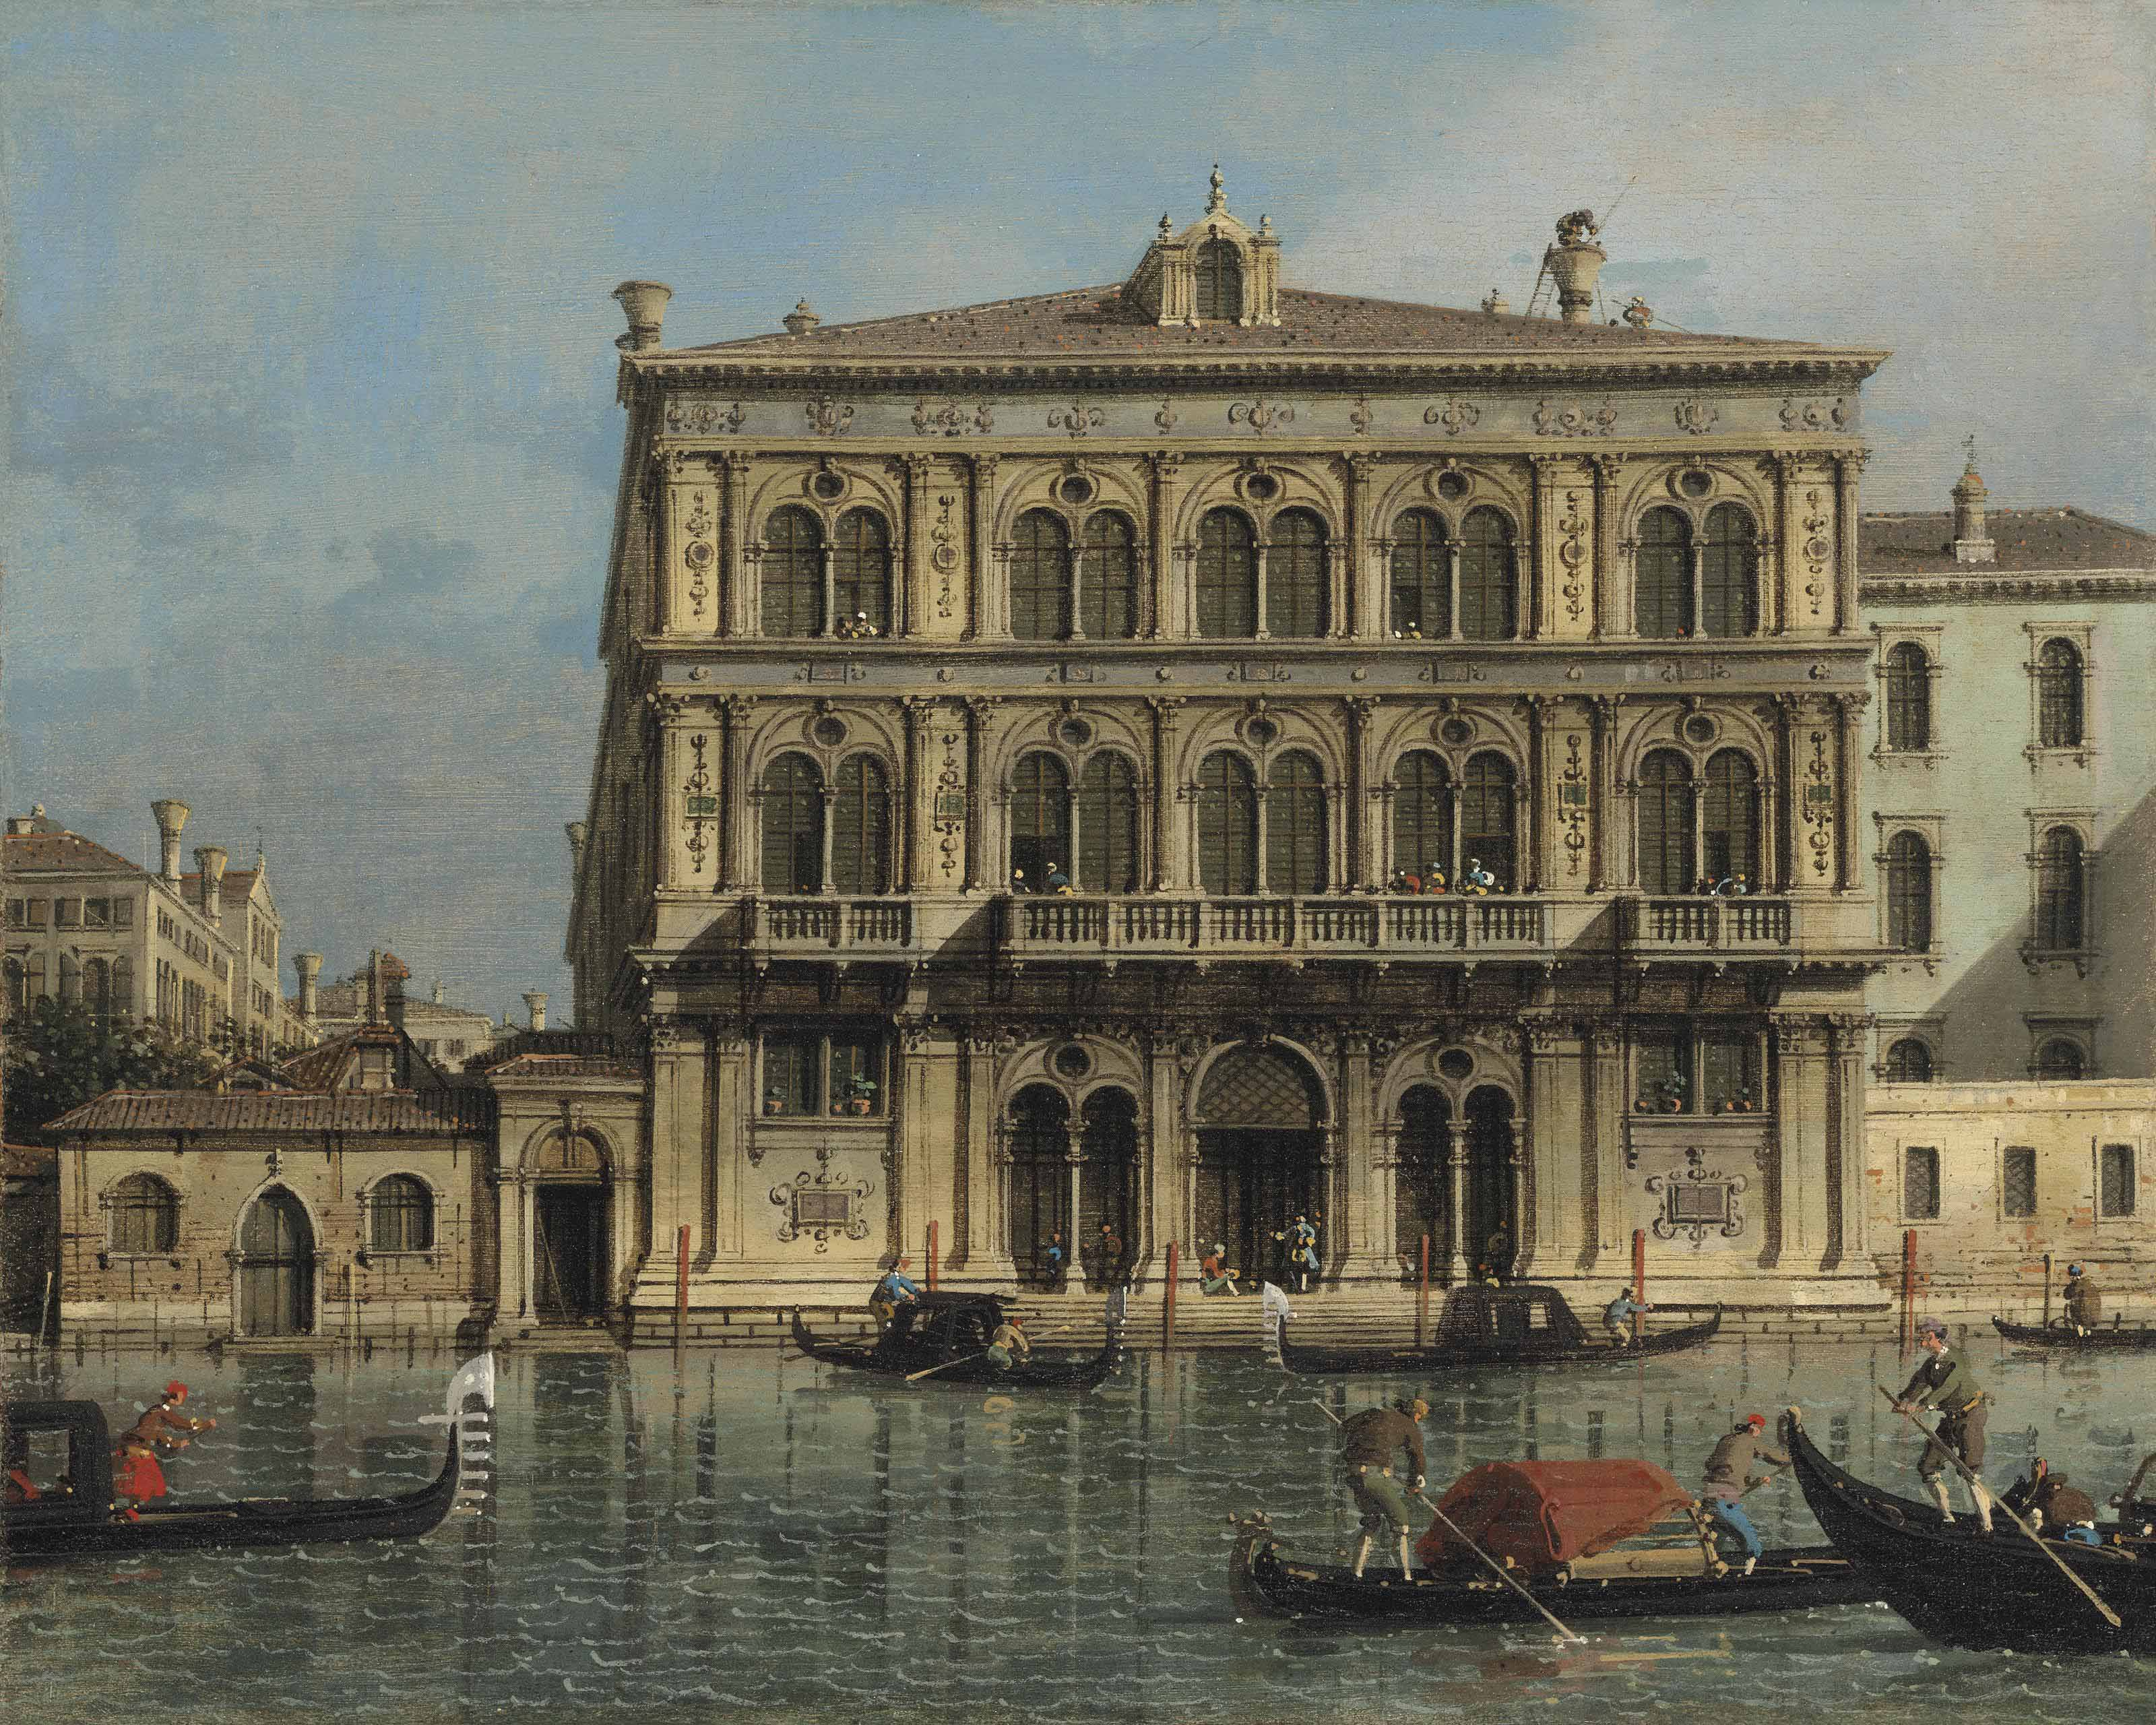 Palazzo Vendramin-Calergi, on the Grand Canal, Venice